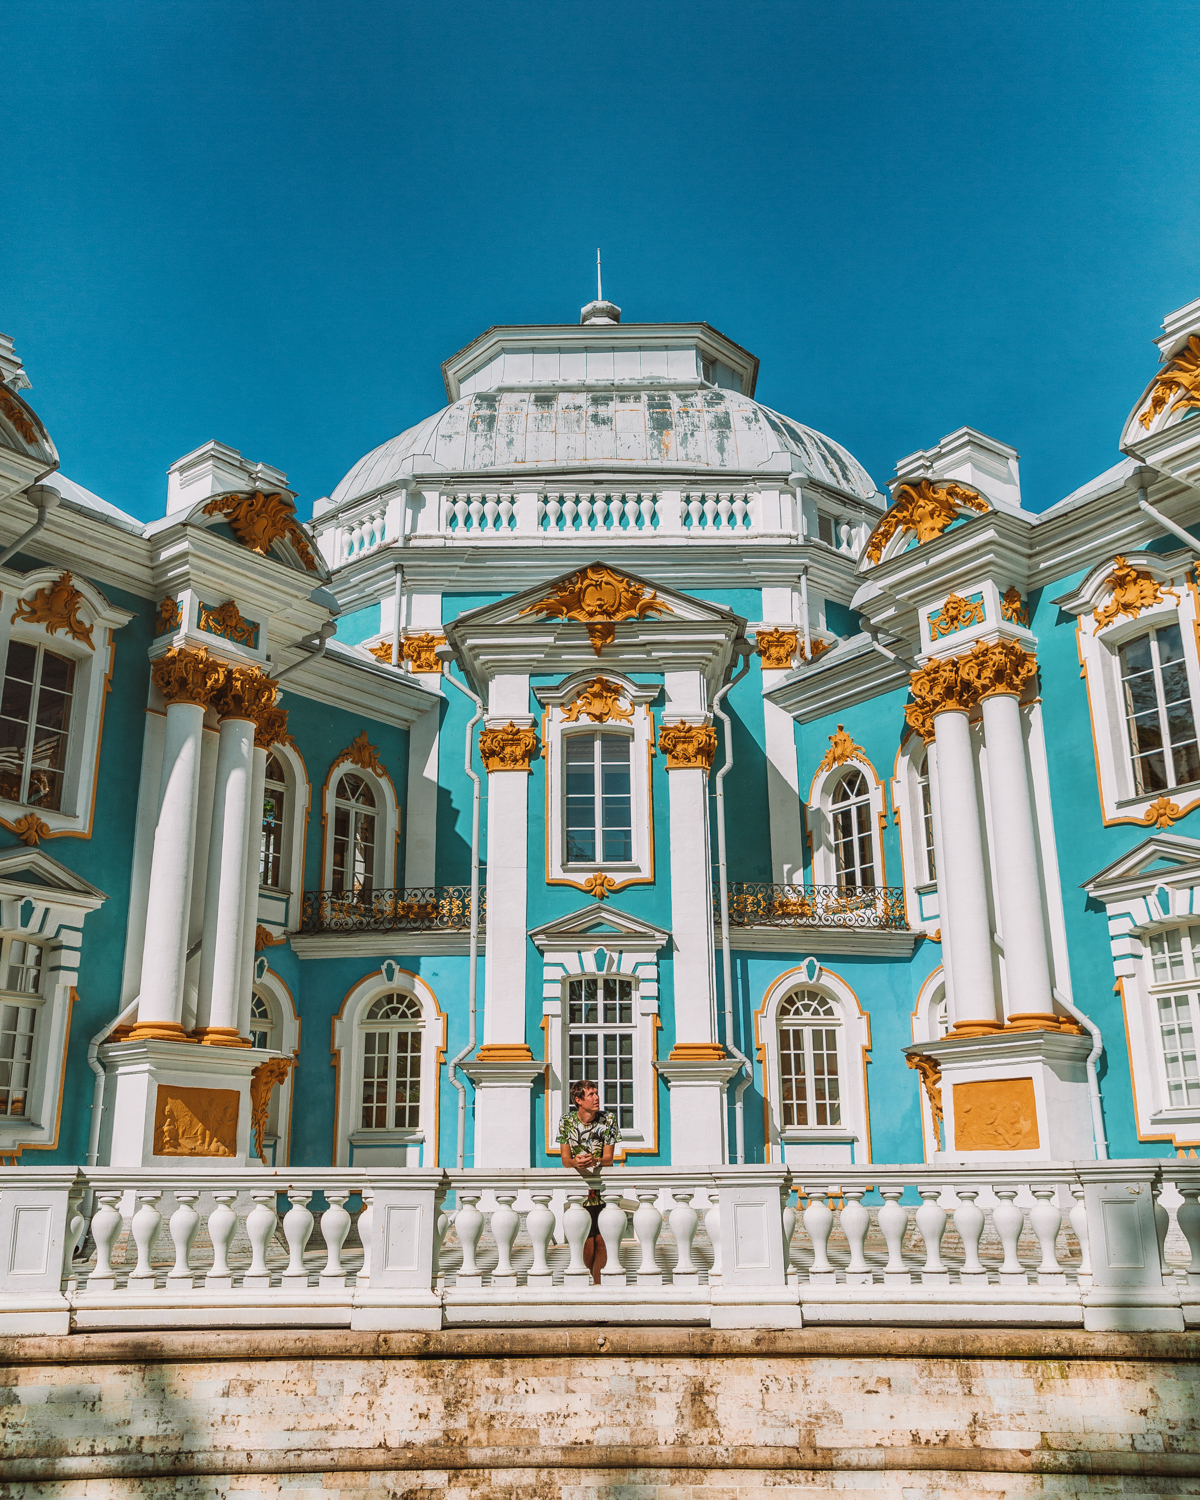 thestylejungle_Russia_Saint_petersburg_travel_blog_palace_architecture